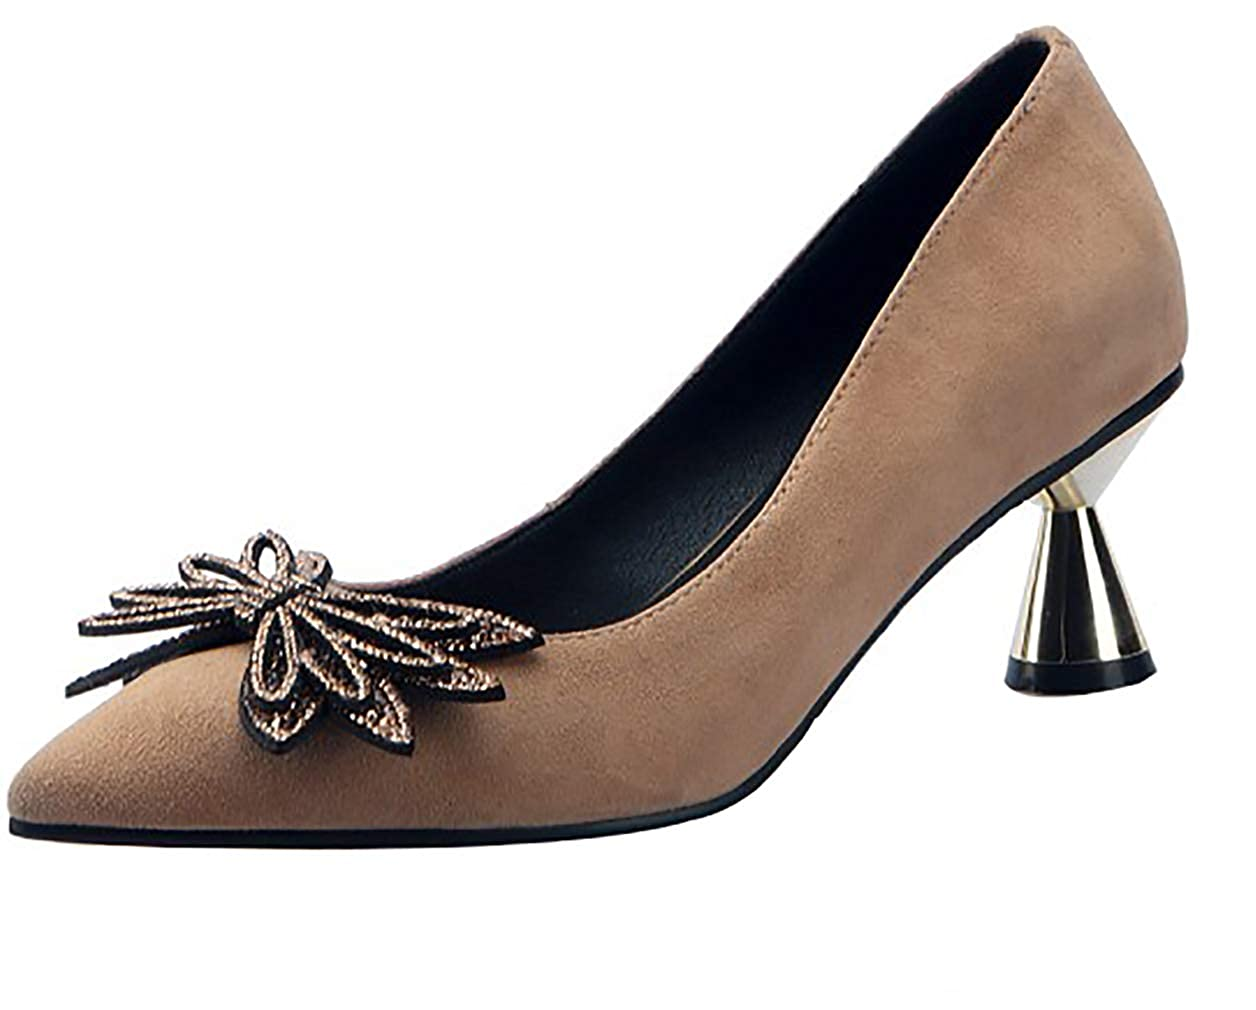 Calaier Womens guima Pointed-Toe 5.5CM Block Heel Slip-on Pumps-Shoes Shoes